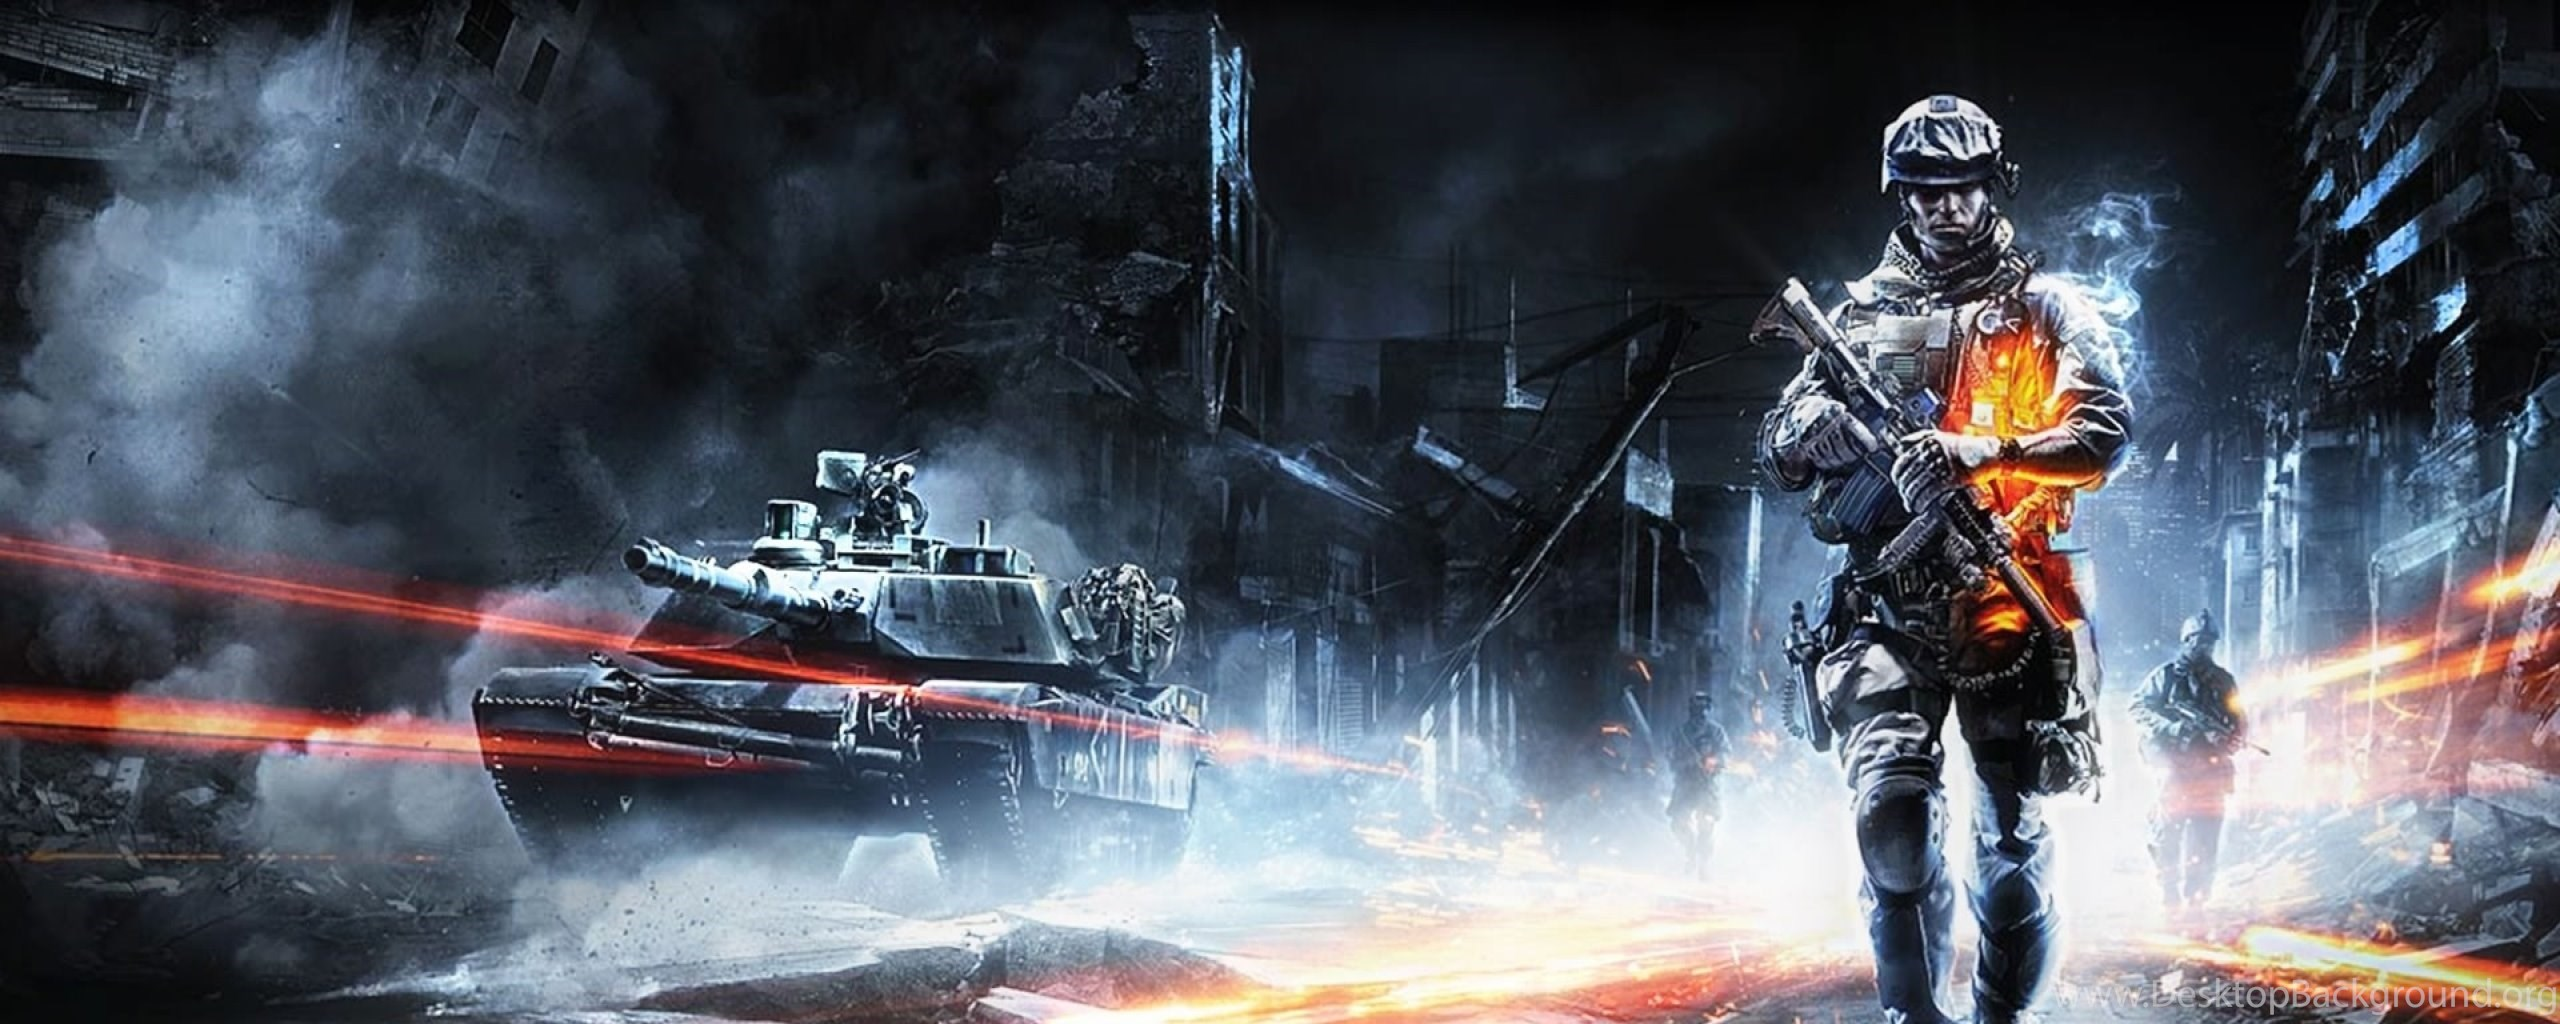 Download Wallpapers 2560x1024 Battlefield 3 Tank City Road Dual Desktop Background